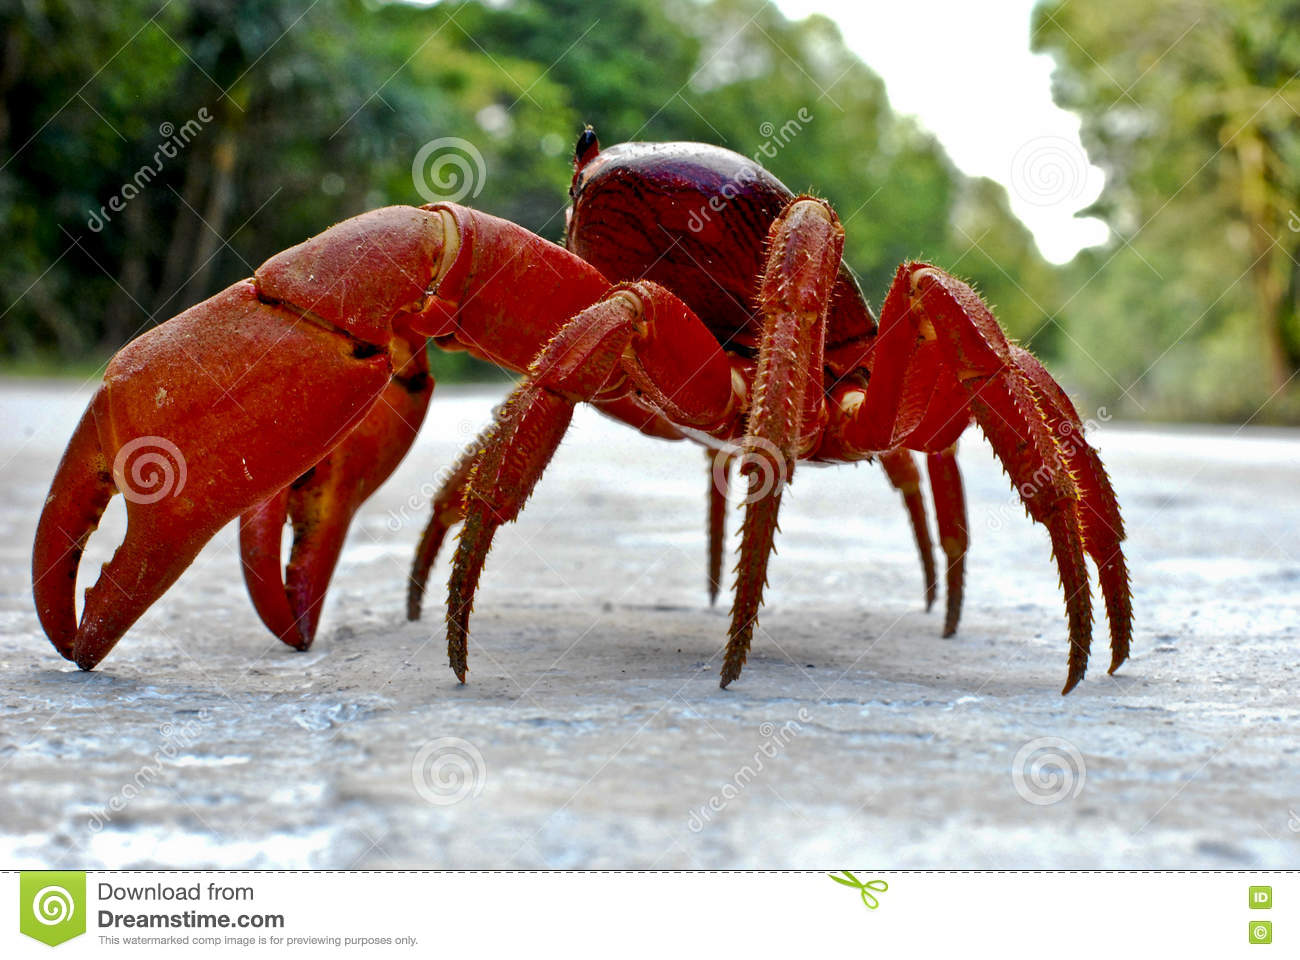 Christmas Island Red Crab.Christmas Island Red Crab Stock Image Image Of Migration